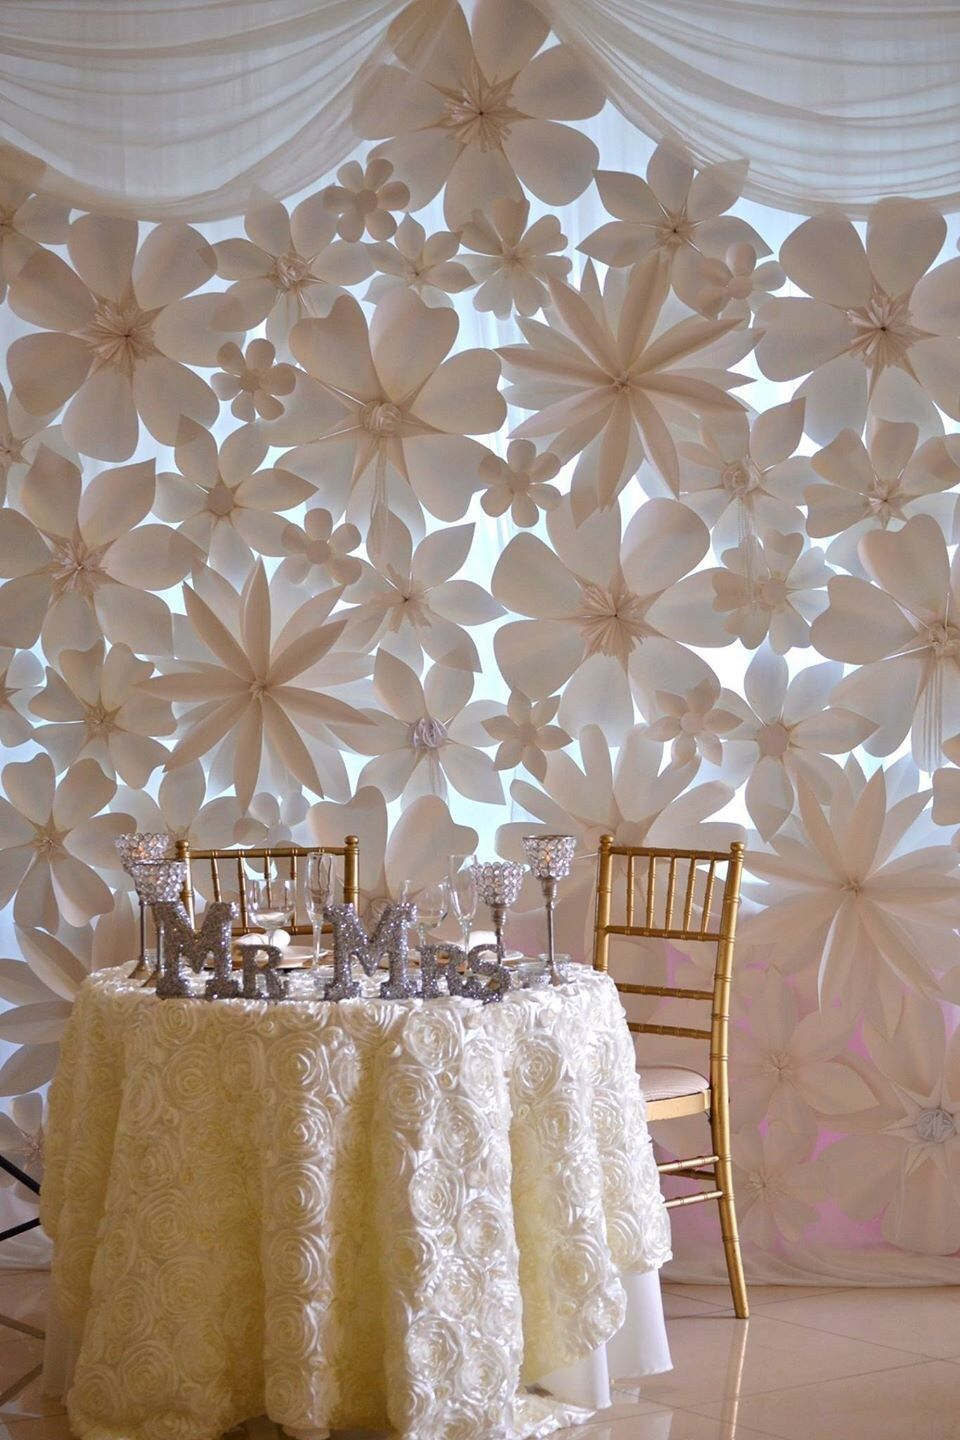 Decoraci n con flores gigantes de papel ideas para - Decorar con papel ...